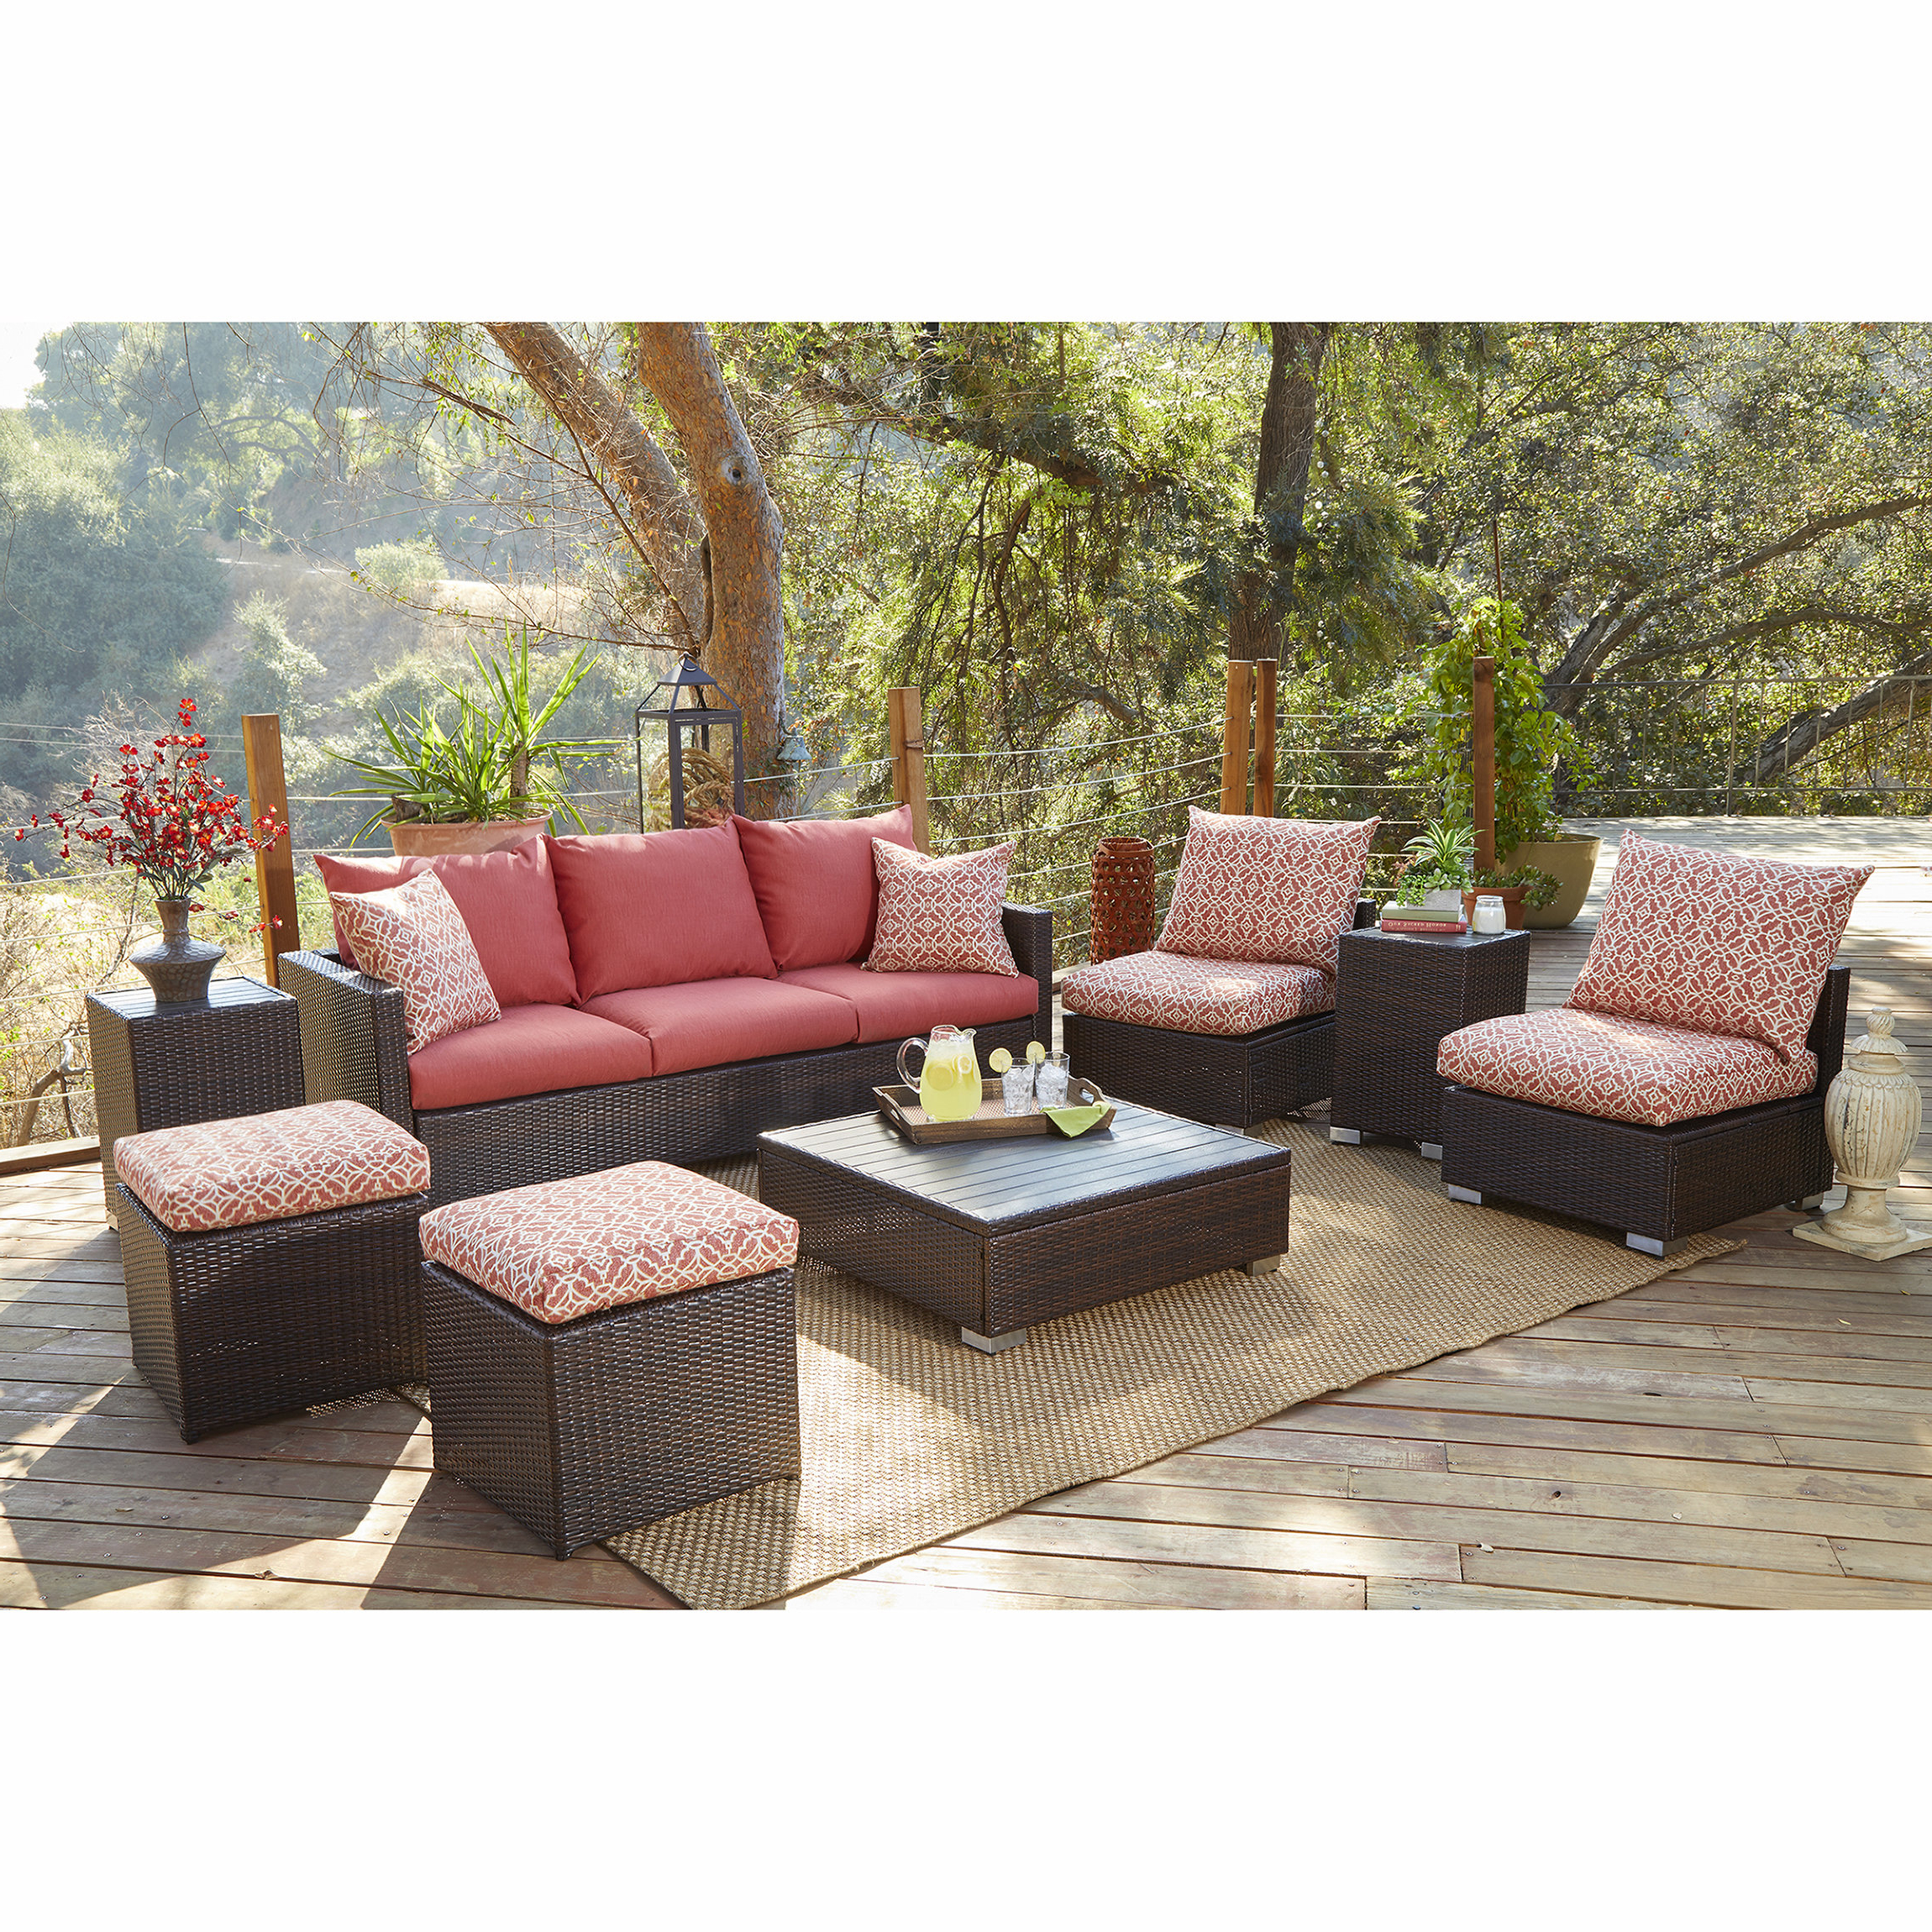 Mcmanis Patio Sofas With Cushion With Most Popular Mcmanis 8 Piece Sofa Seating With Cushions (View 15 of 20)